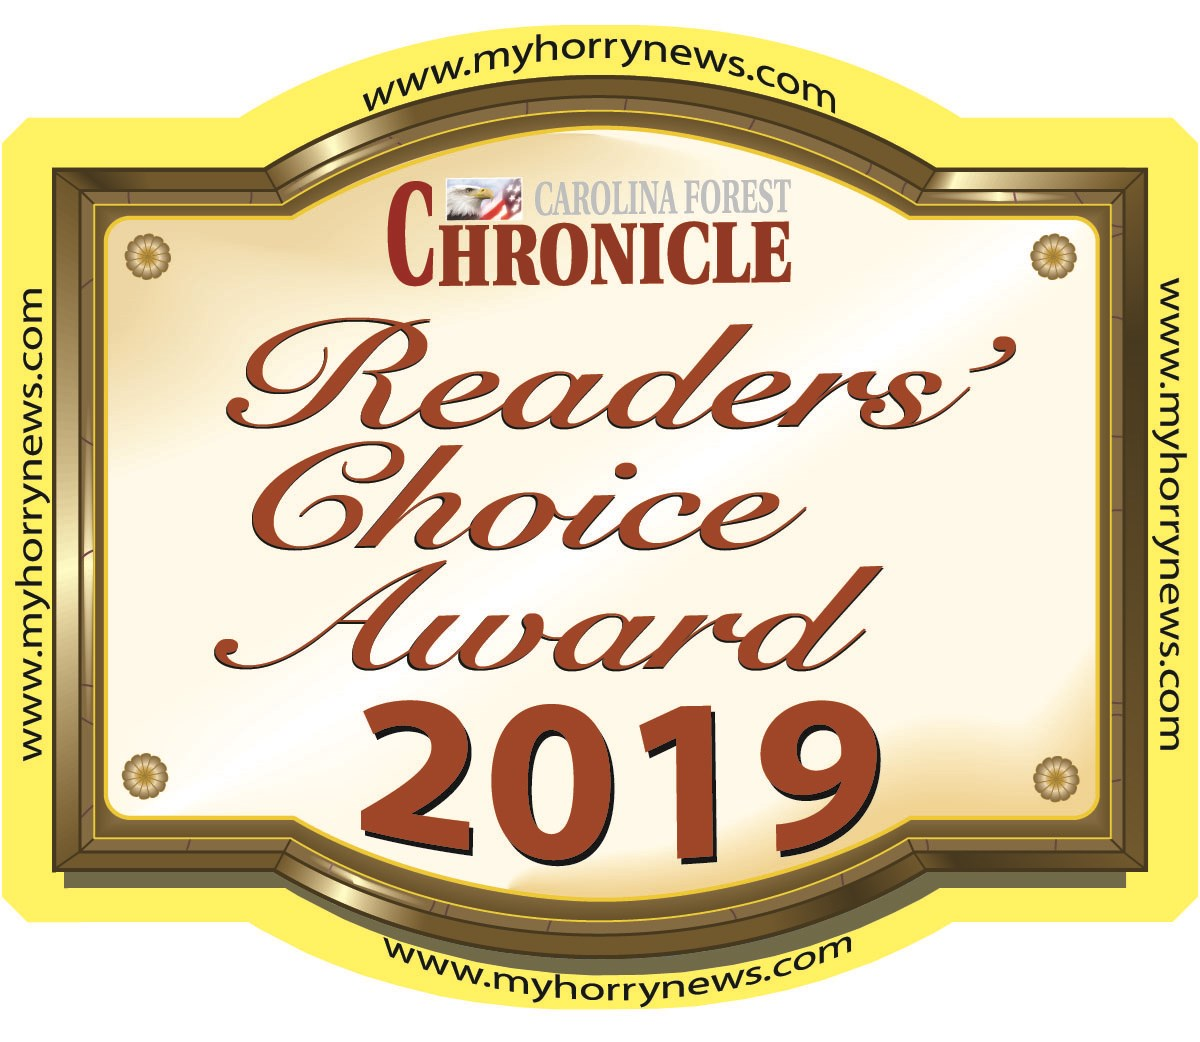 2019 Carolina Forest Chronicle Readers Choice